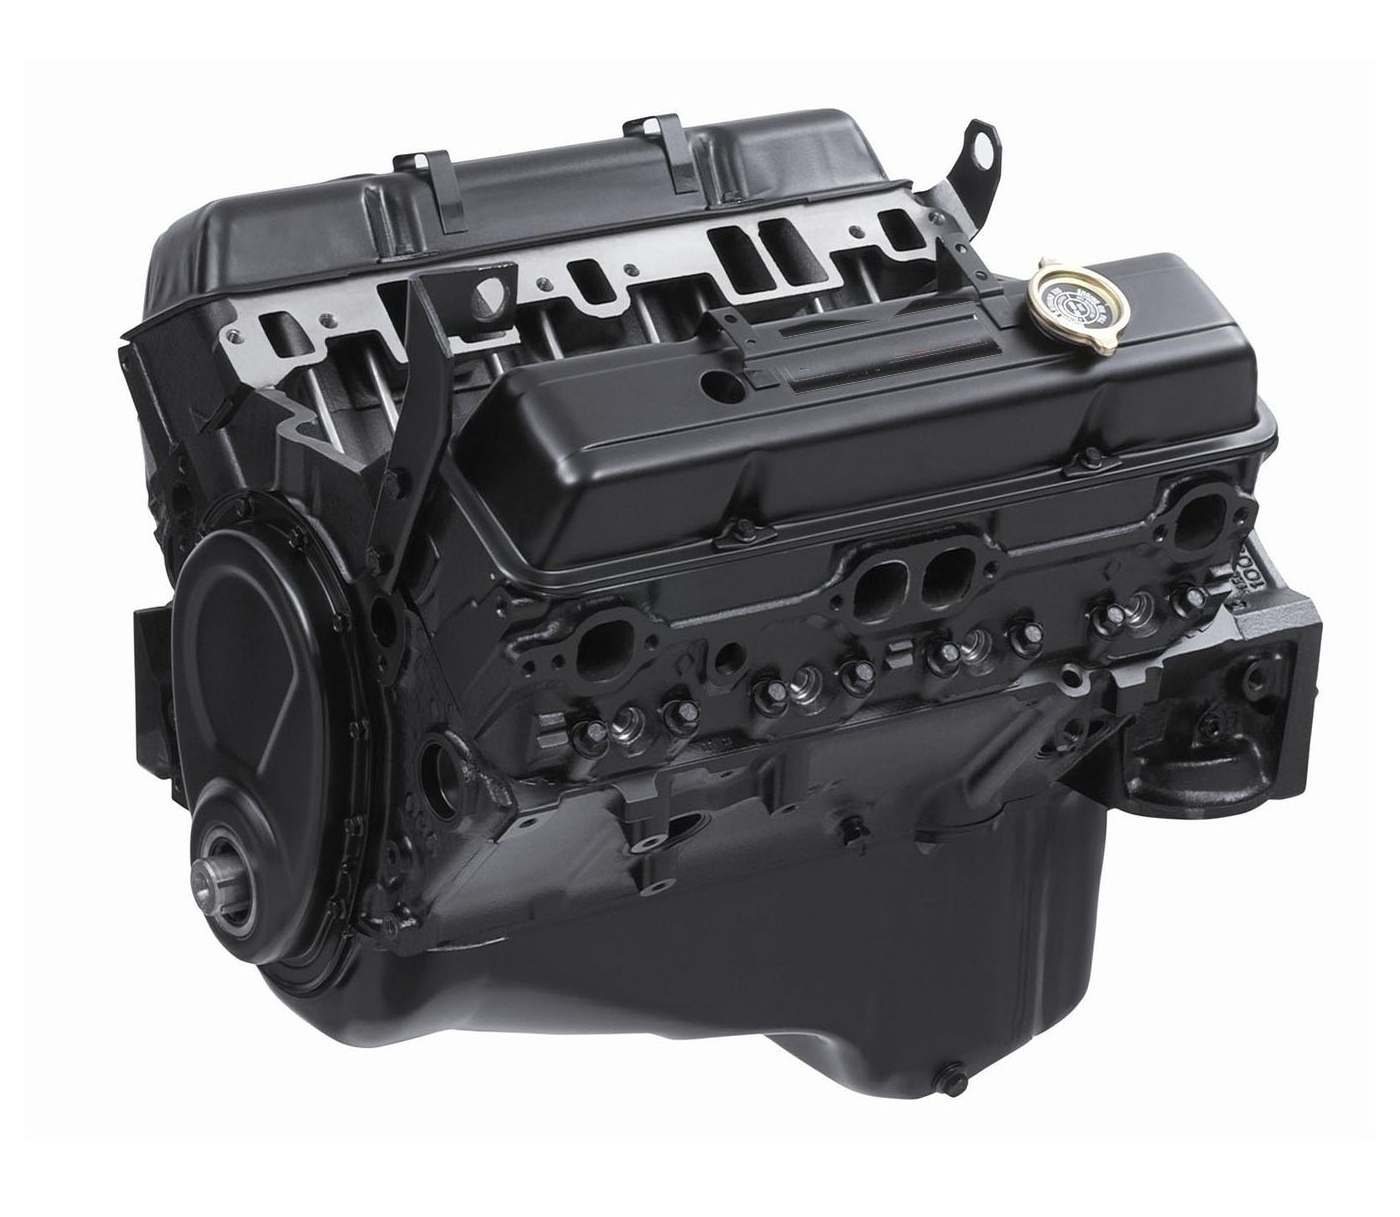 5.7L Reman Long Block Engine For GMC K1500